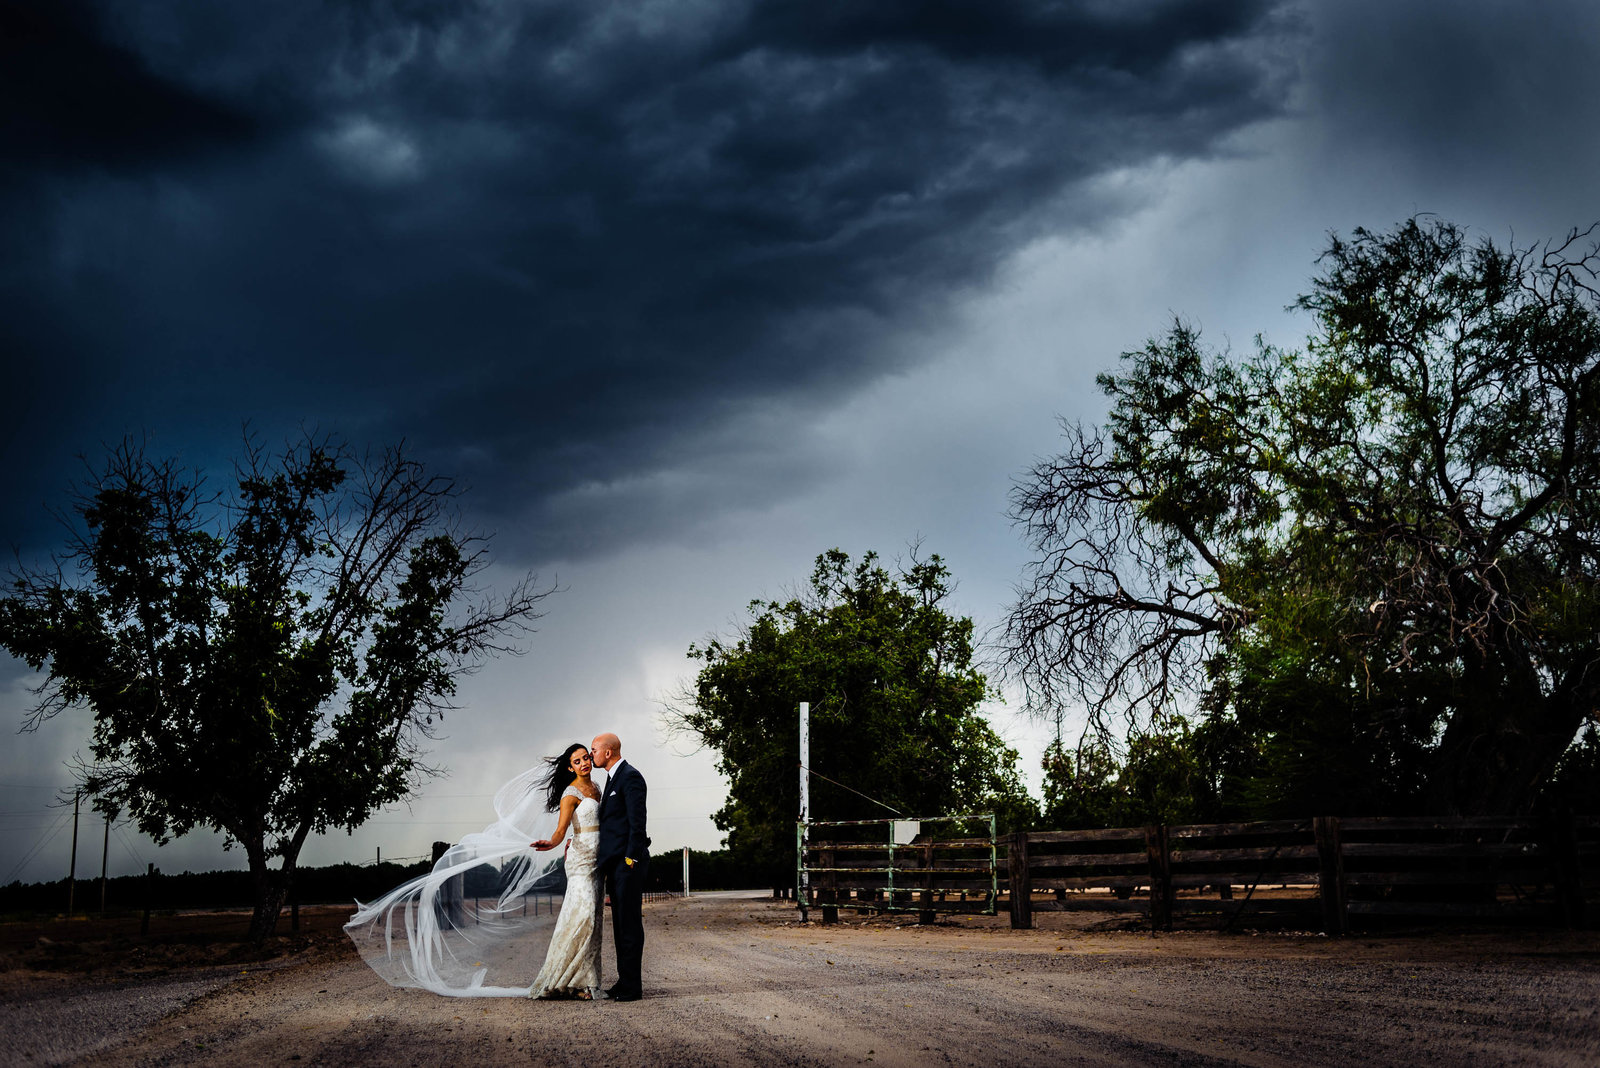 221-El-paso-wedding-photographer-DeAd_0509